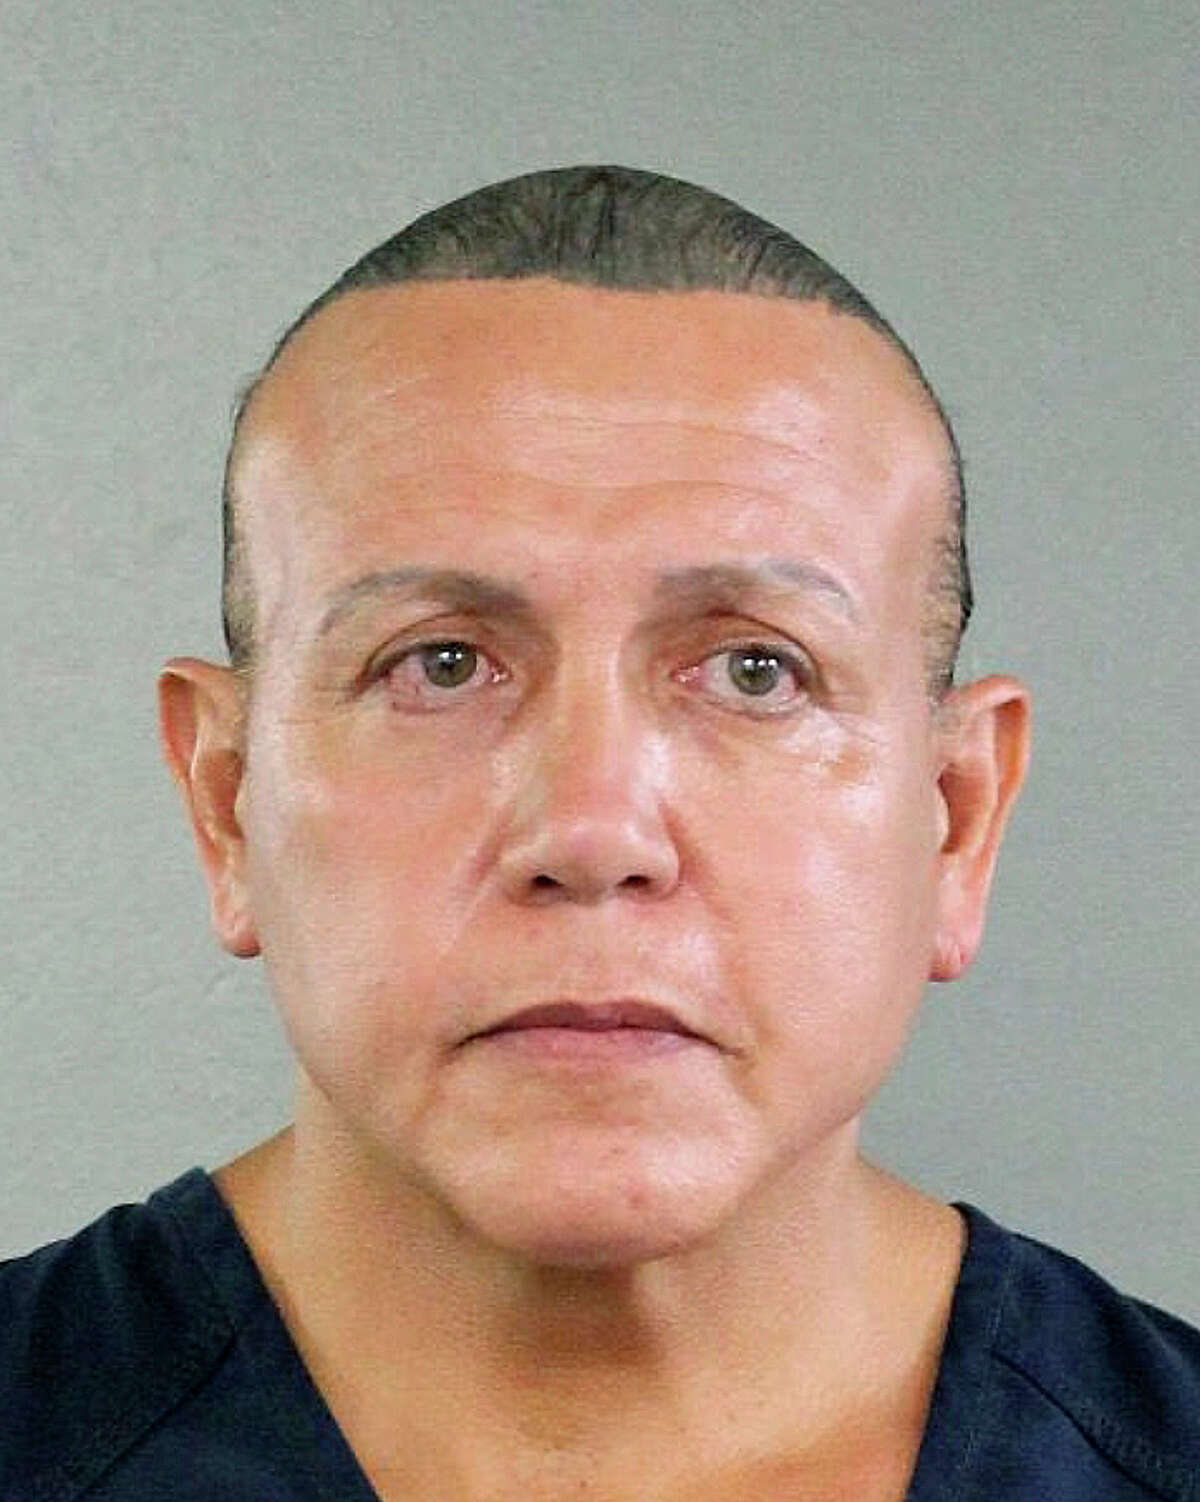 In this undated photo released by the Broward County Sheriff's office, Cesar Sayoc is seen in a booking photo, in Miami. Federal authorities took Sayoc, 56, of Aventura, Fla., into custody Friday, Oct. 26, 2018 in Florida in connection with the mail-bomb scare that earlier widened to 12 suspicious packages, the FBI and Justice Department said. (Broward County Sheriff's Office via AP)